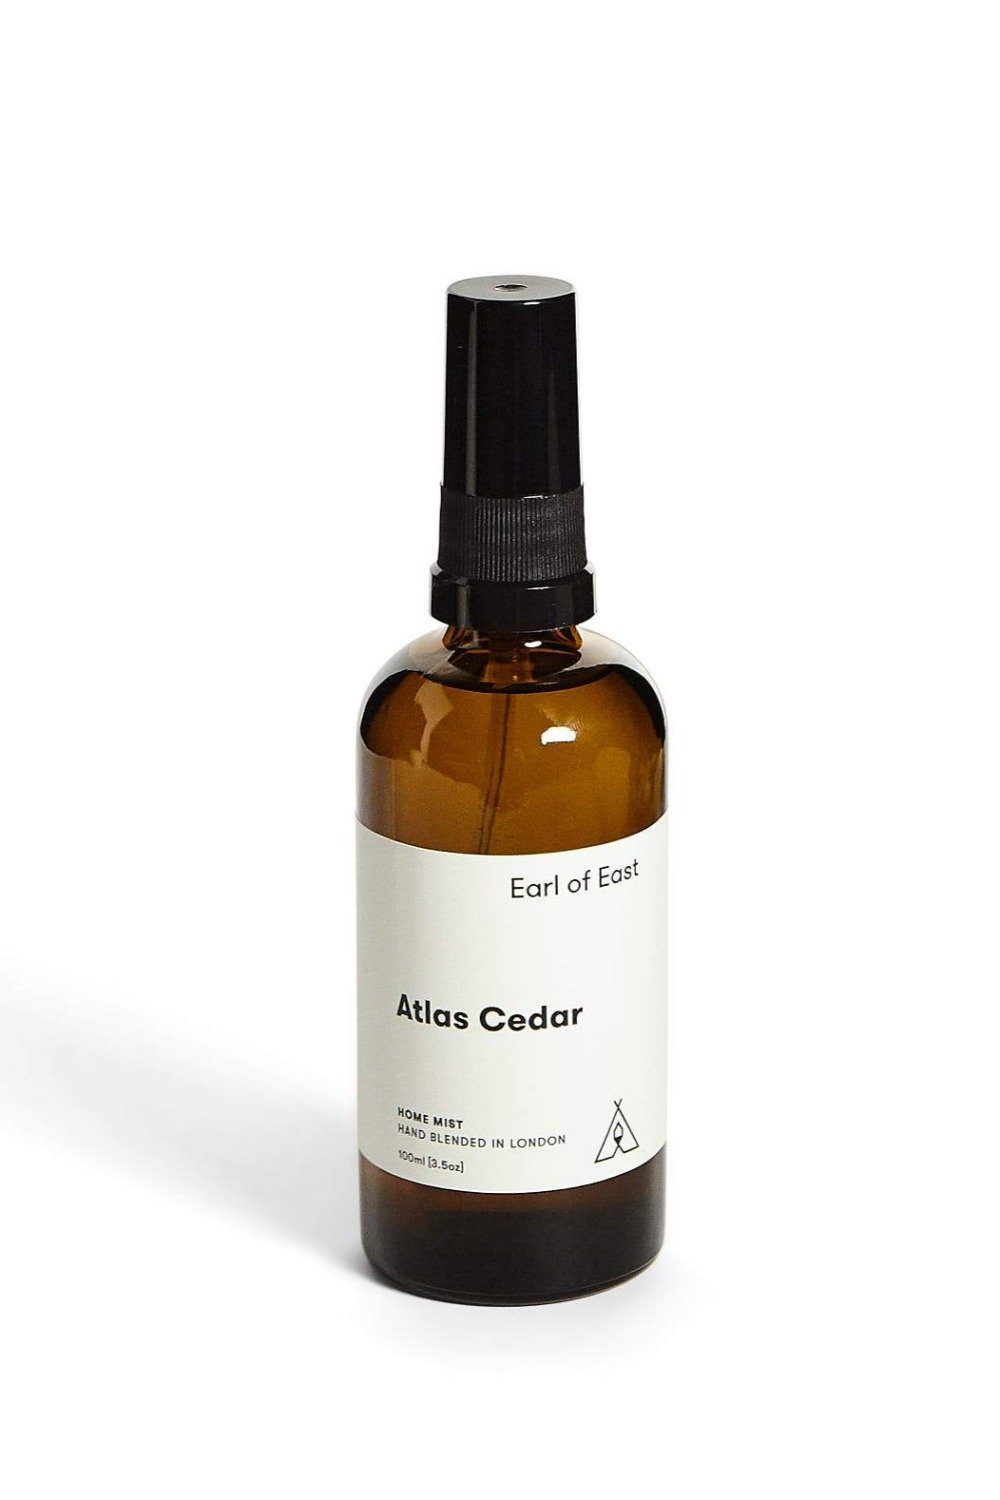 Atlast Cedar Scented Home Mist Candles & Fragrance Earl of East London